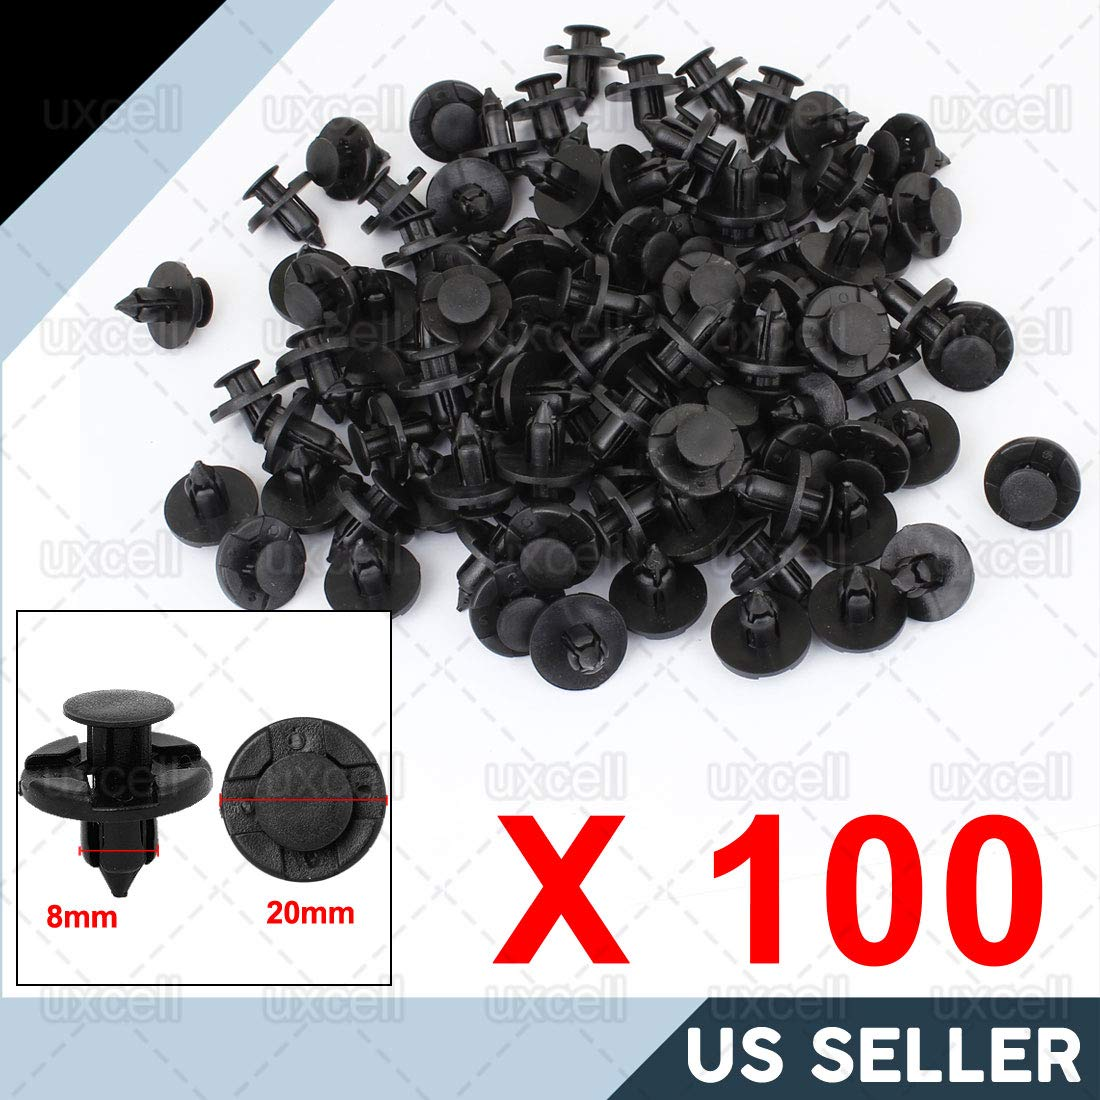 uxcell 100x 8mm Push-Type Retainer Clips Fit for Nissan Bumpers Splashguards Wheelarch Plastic Rivet